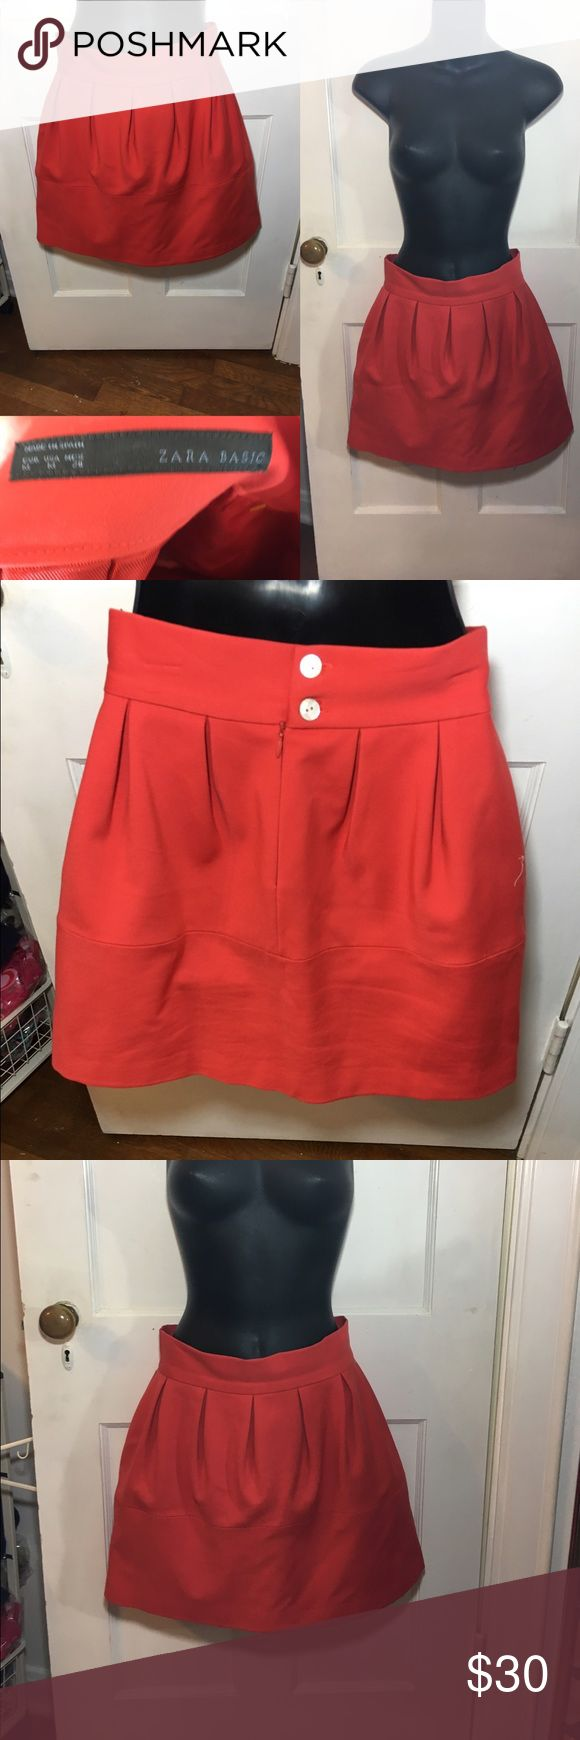 Burnt Orange 🍊 Zara Basic Skirt Only worn a couple times  -I do not accept offers in the comments so please make all reasonable offers using the offer button only. :) I WILL ALWAYS MAKE A COUNTEROFFER UNTIL I REACH MY LOWEST PRICE NO DECLINES SOME ITEMS PRICES ARE FIRM  -NO TRADES  -I ship every Monday, Wednesday and Friday   💕Instagram- allisonsbeautyboutique 💕 Your purchase is going to help me graduate community college with as little debt as possible. Thank you! Zara Skirts Mini